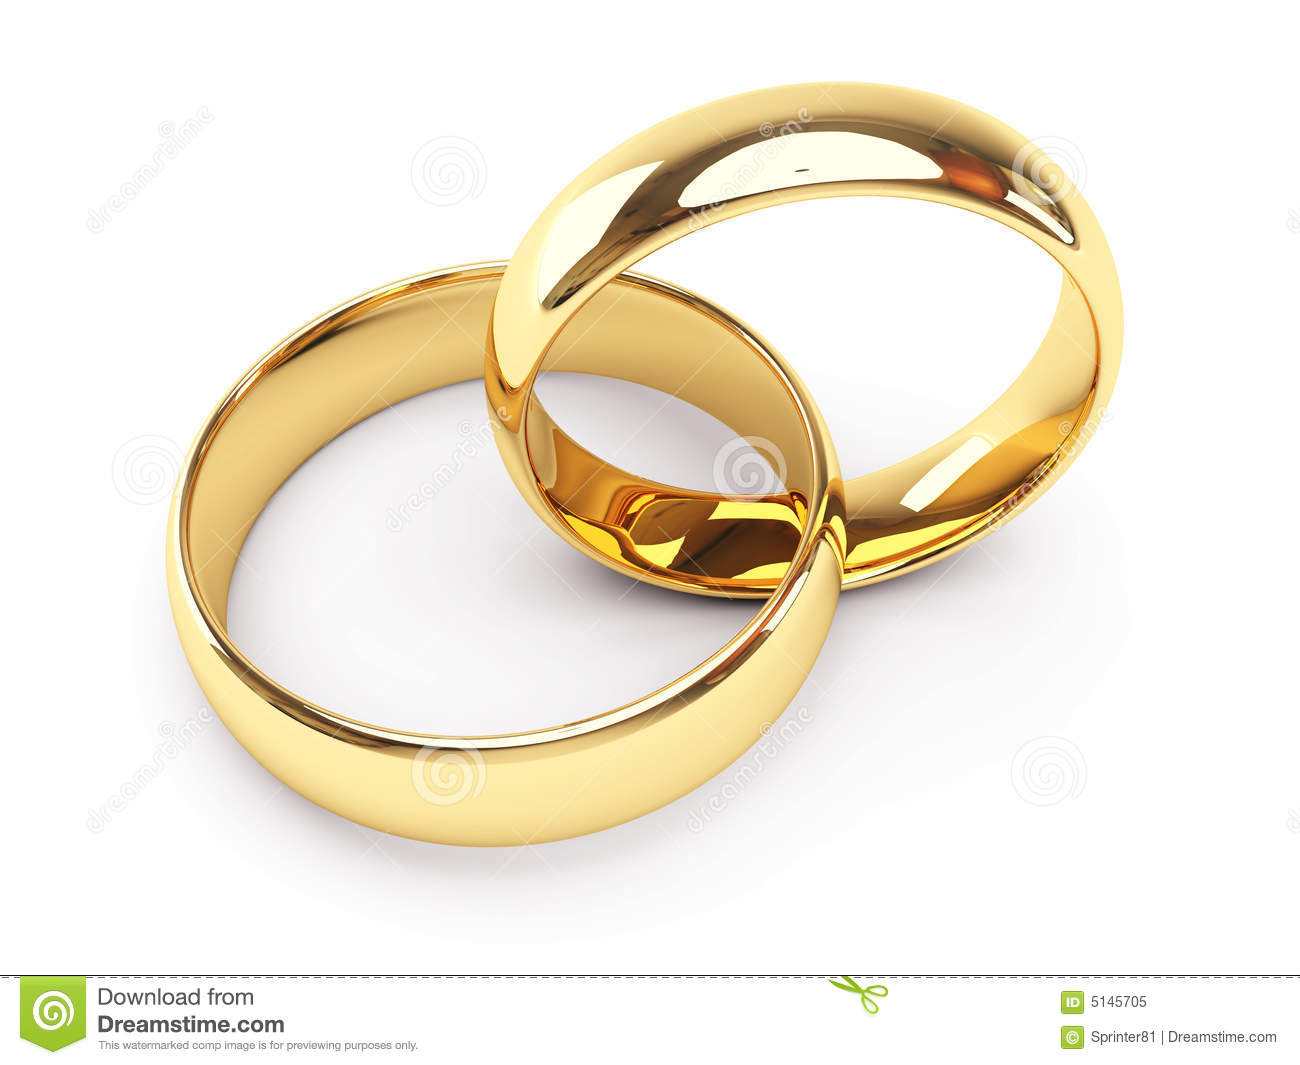 Gold wedding rings stock illustration Illustration of forever 5145705